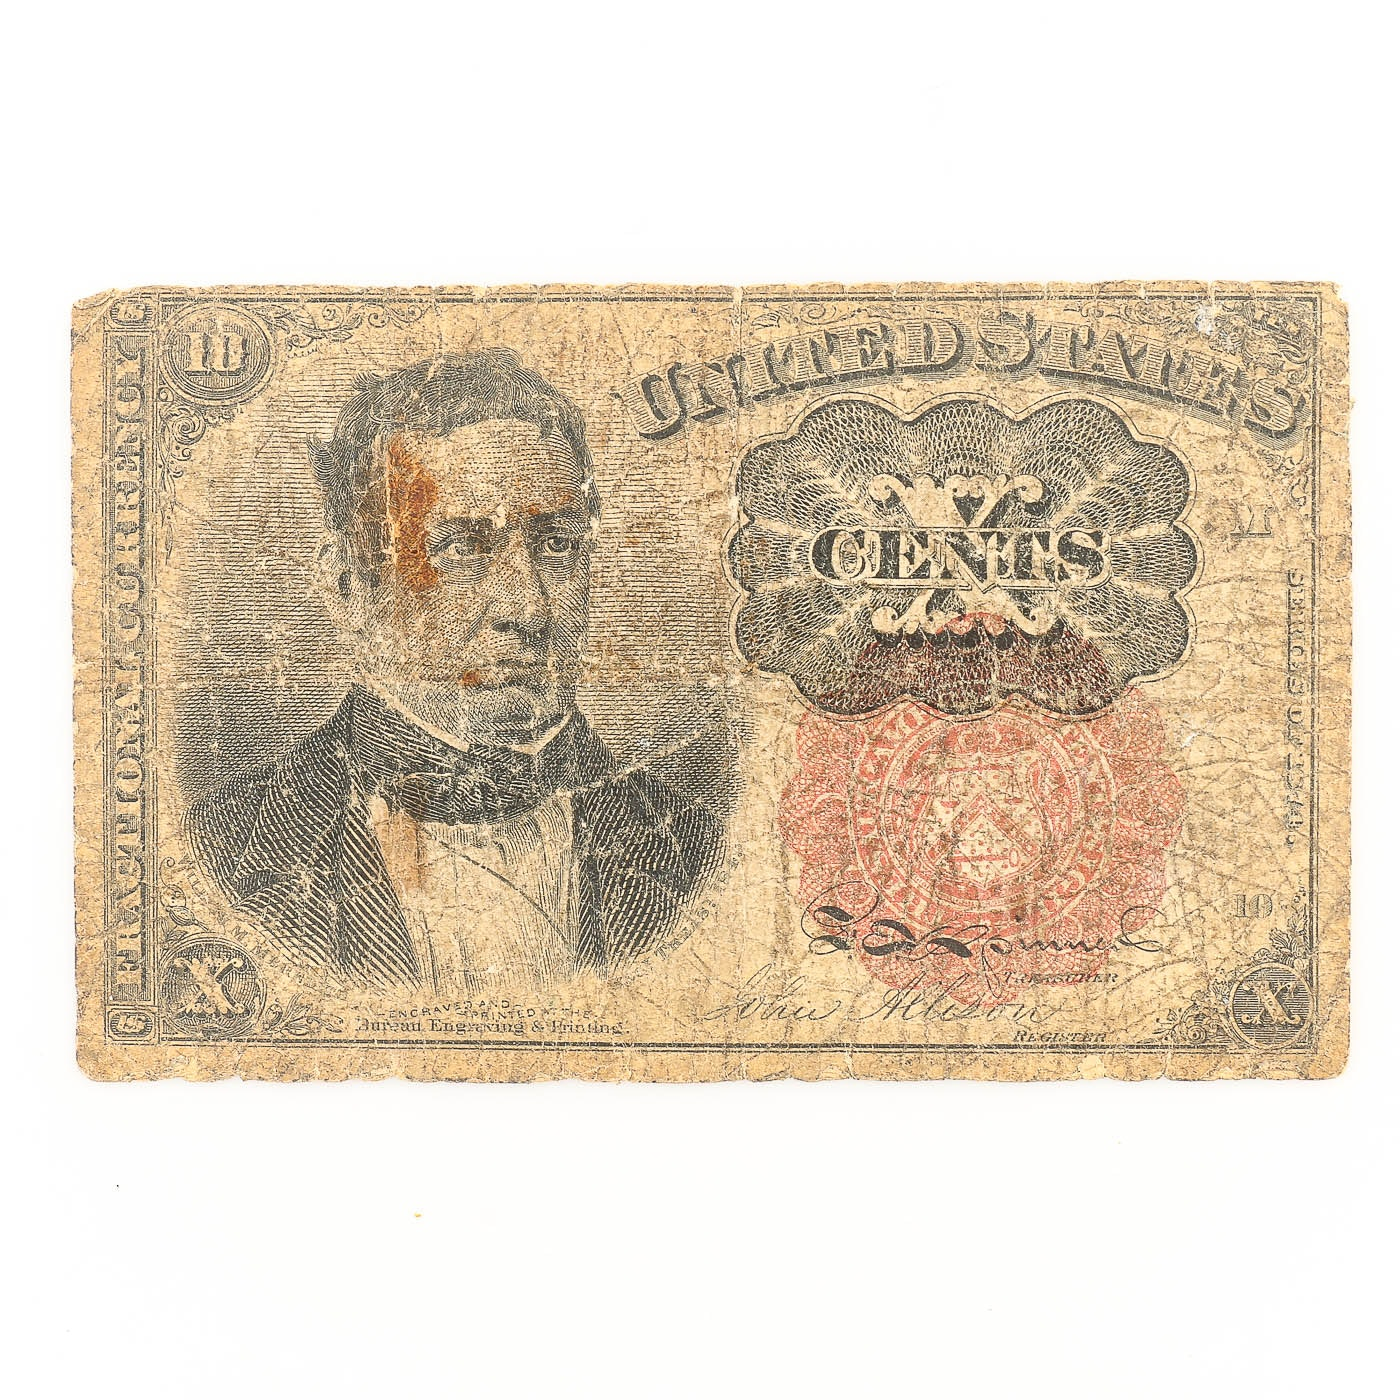 Series of 1874 United States 10 Cent Fractional Currency Note